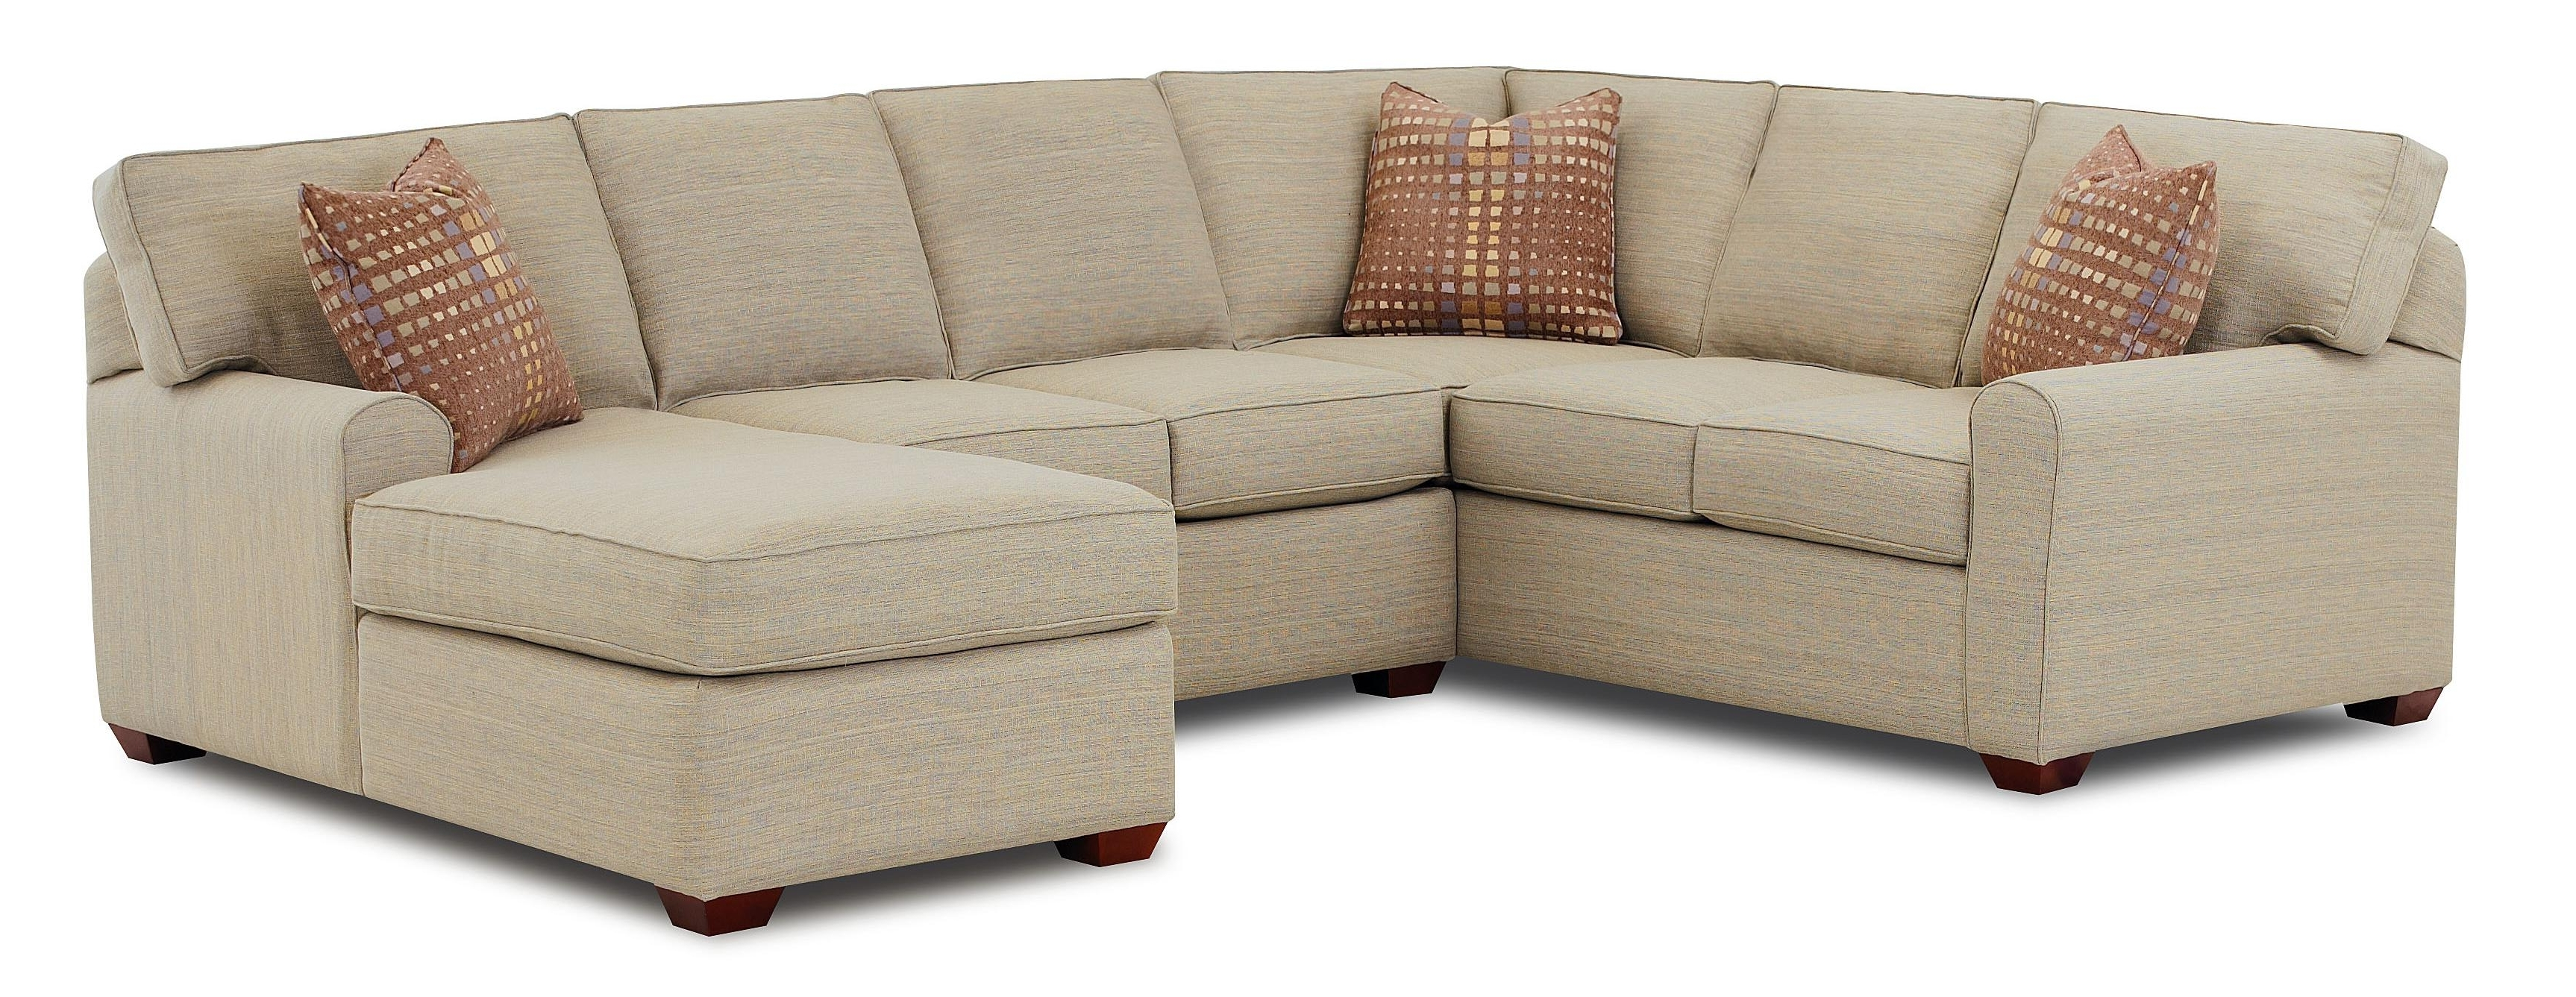 Well Known Sectional Sofa With Right Facing Chaise Loungeklaussner (View 7 of 15)